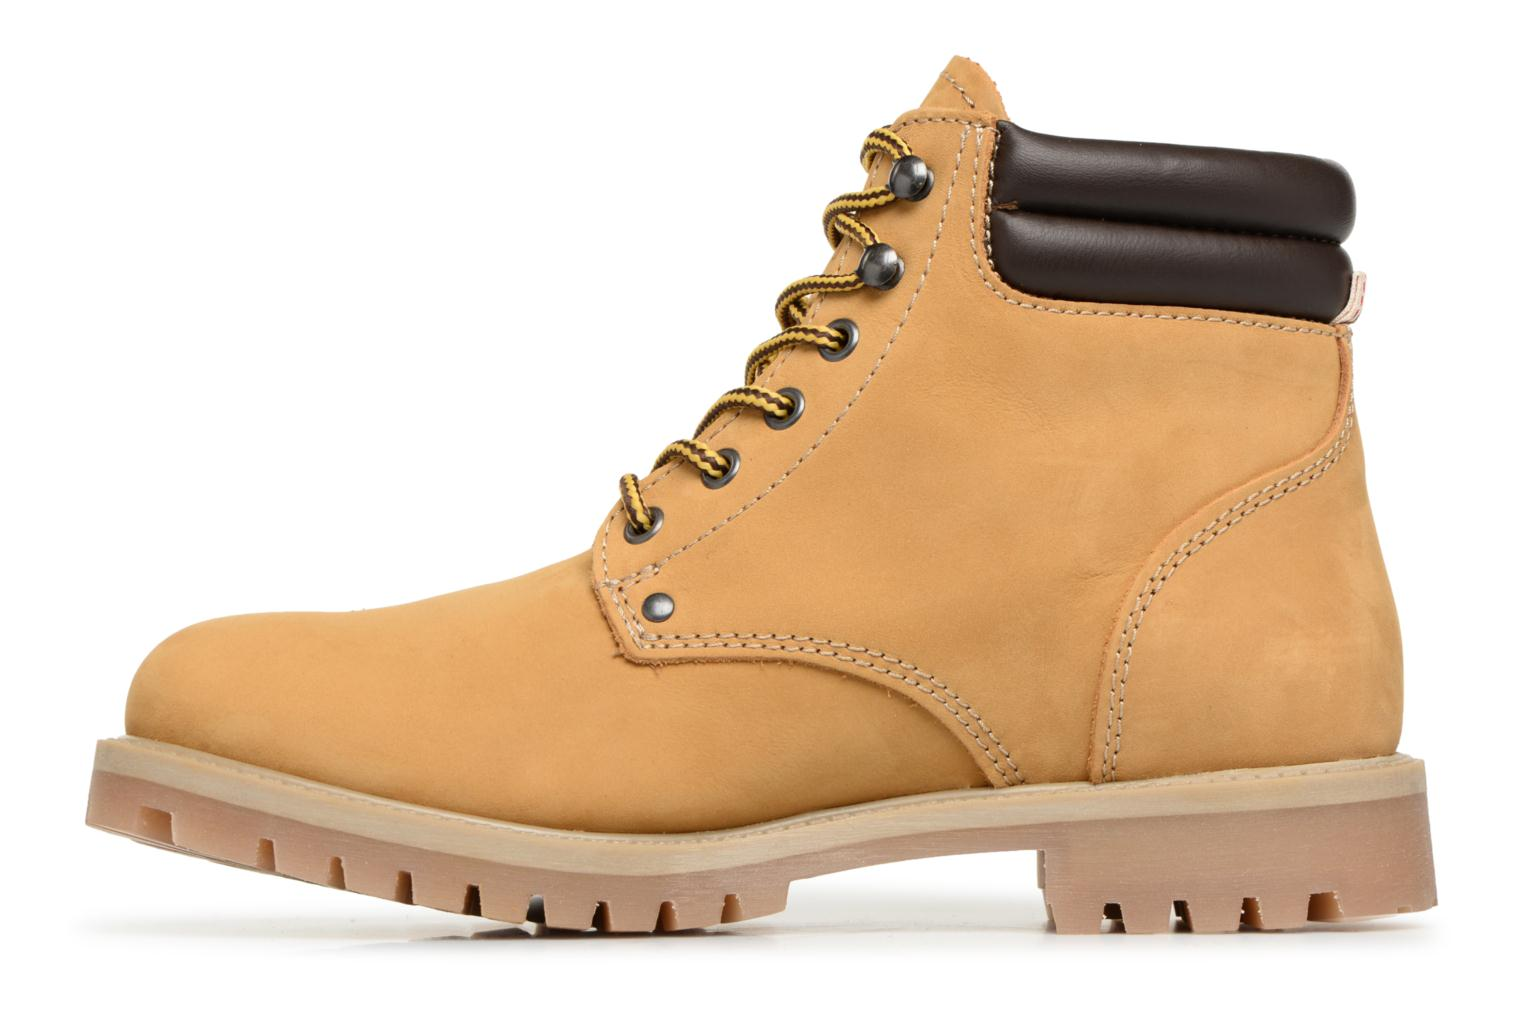 Bottines et boots Jack & Jones JFWSTOKE NUBUCK BOOT NOOS Beige vue face